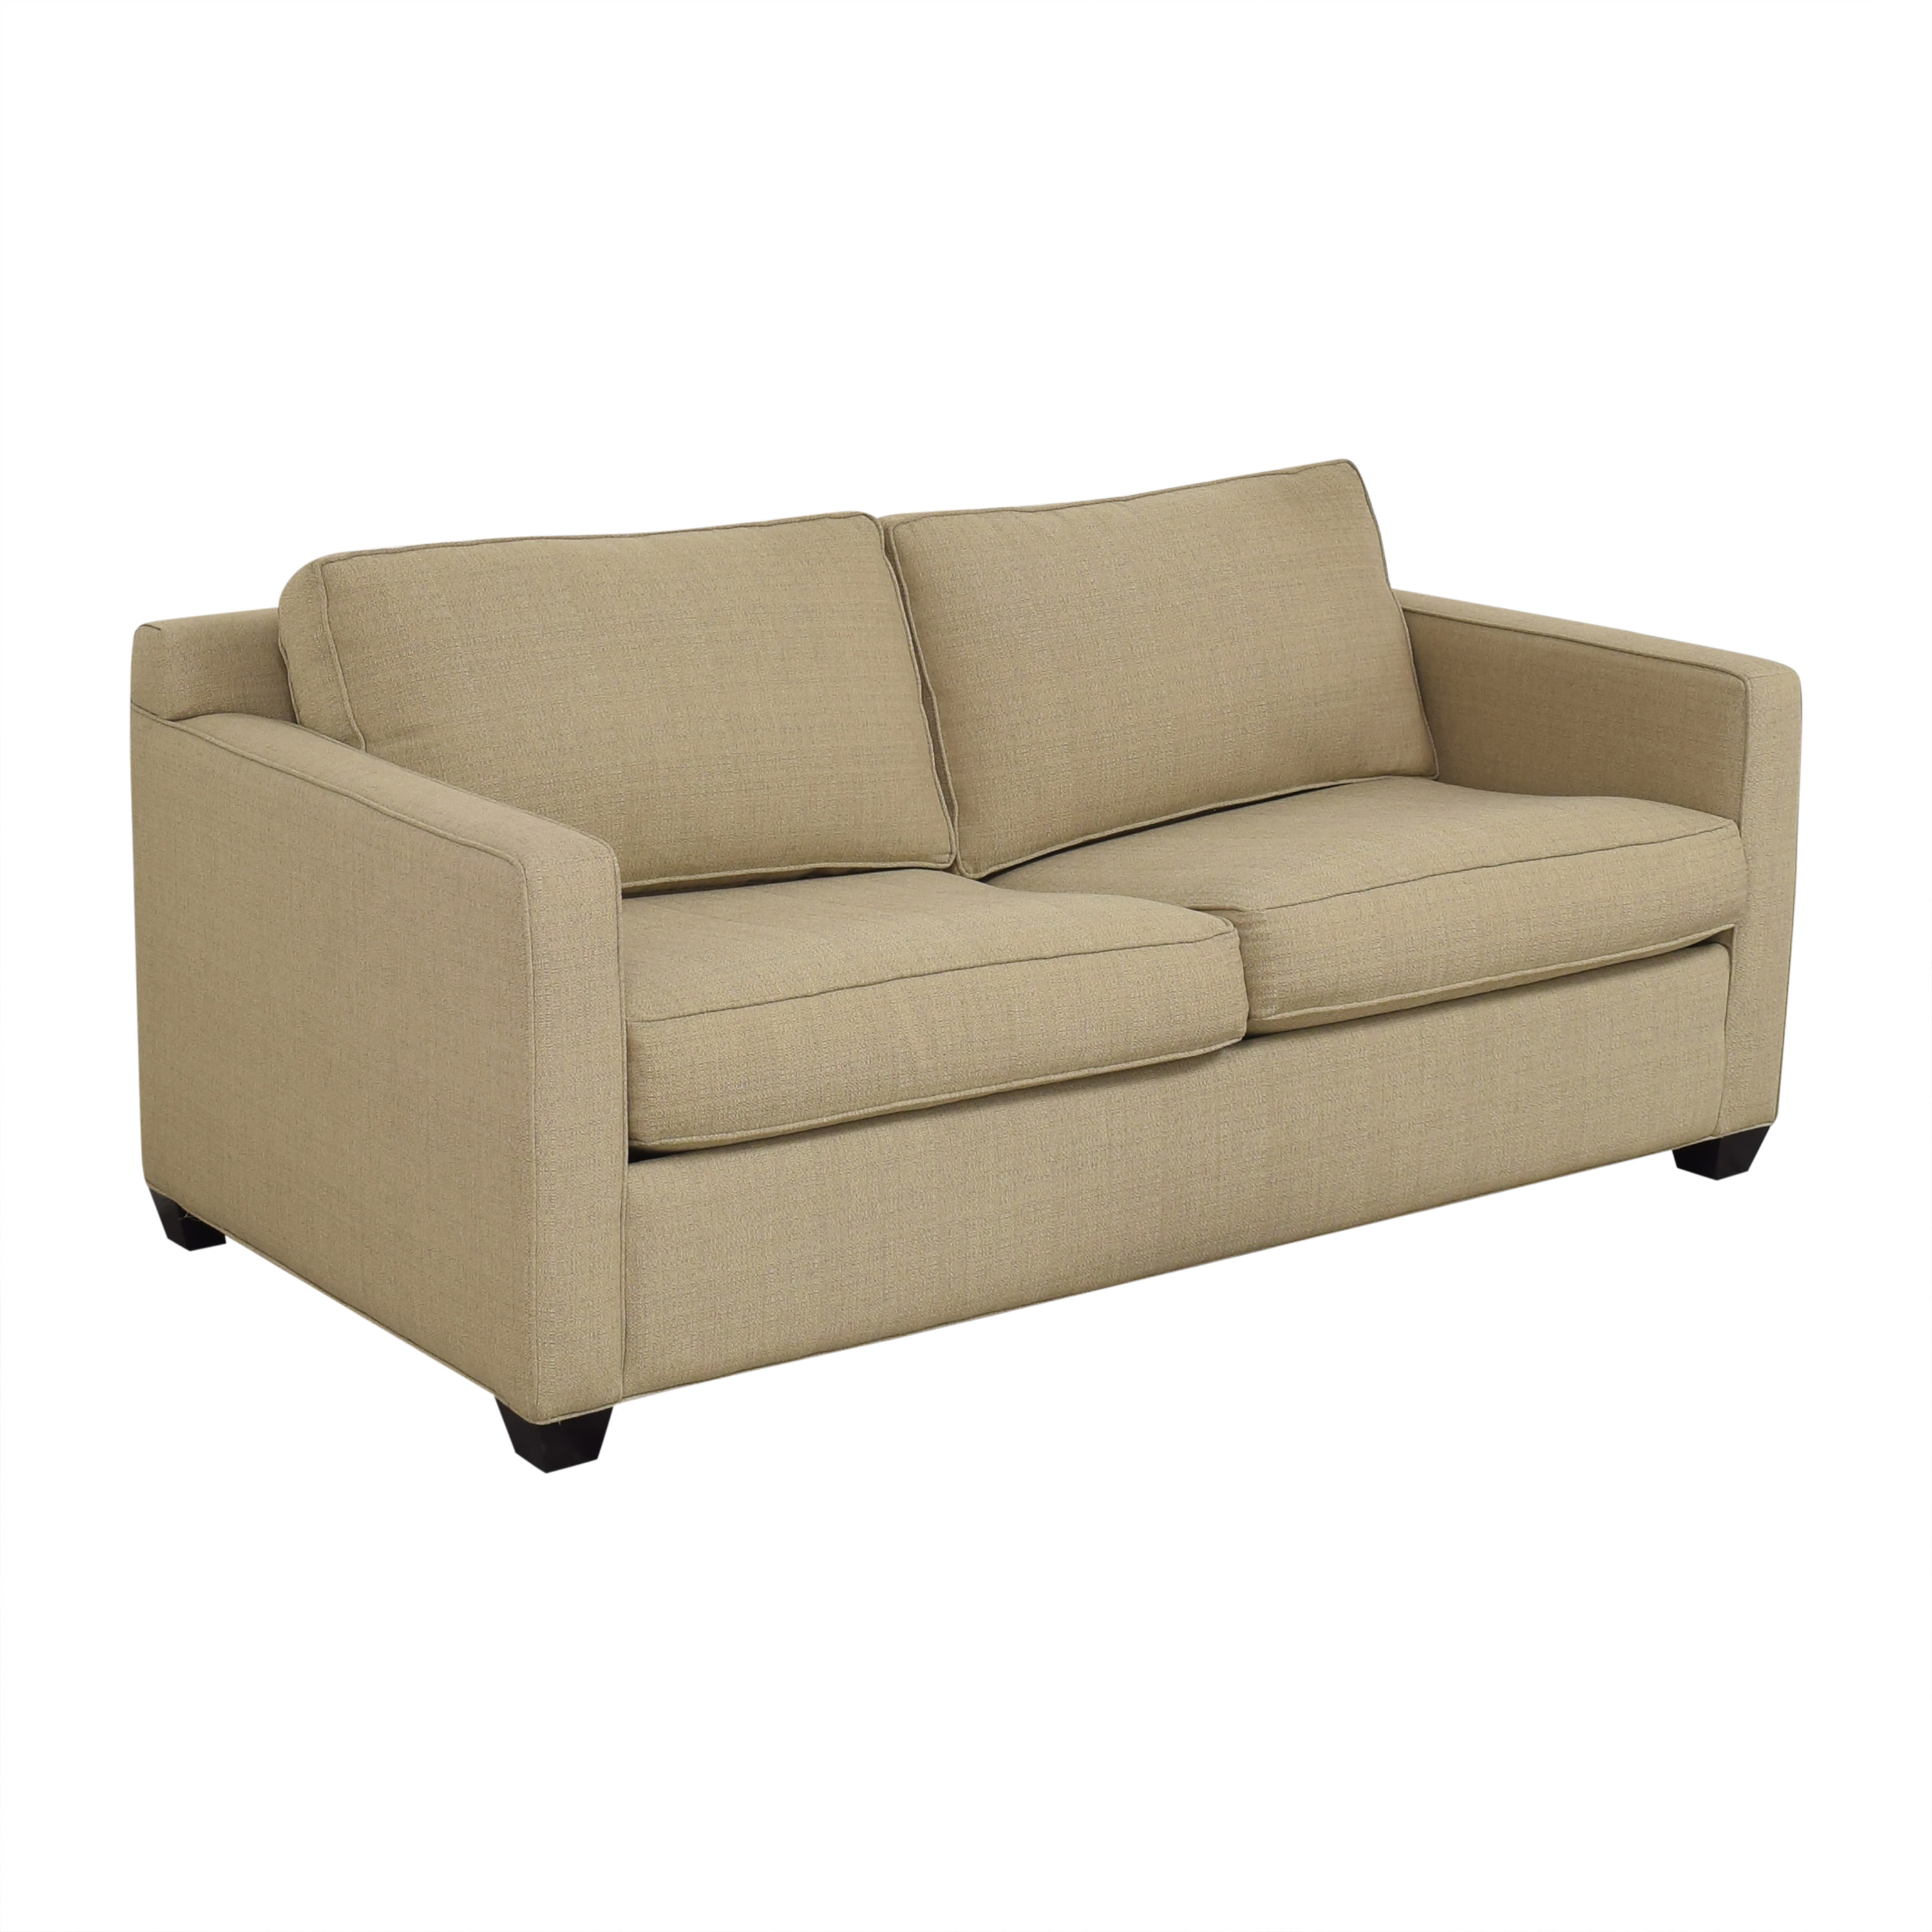 Younger Furniture Younger Furniture Two Cushion Sleeper Sofa discount